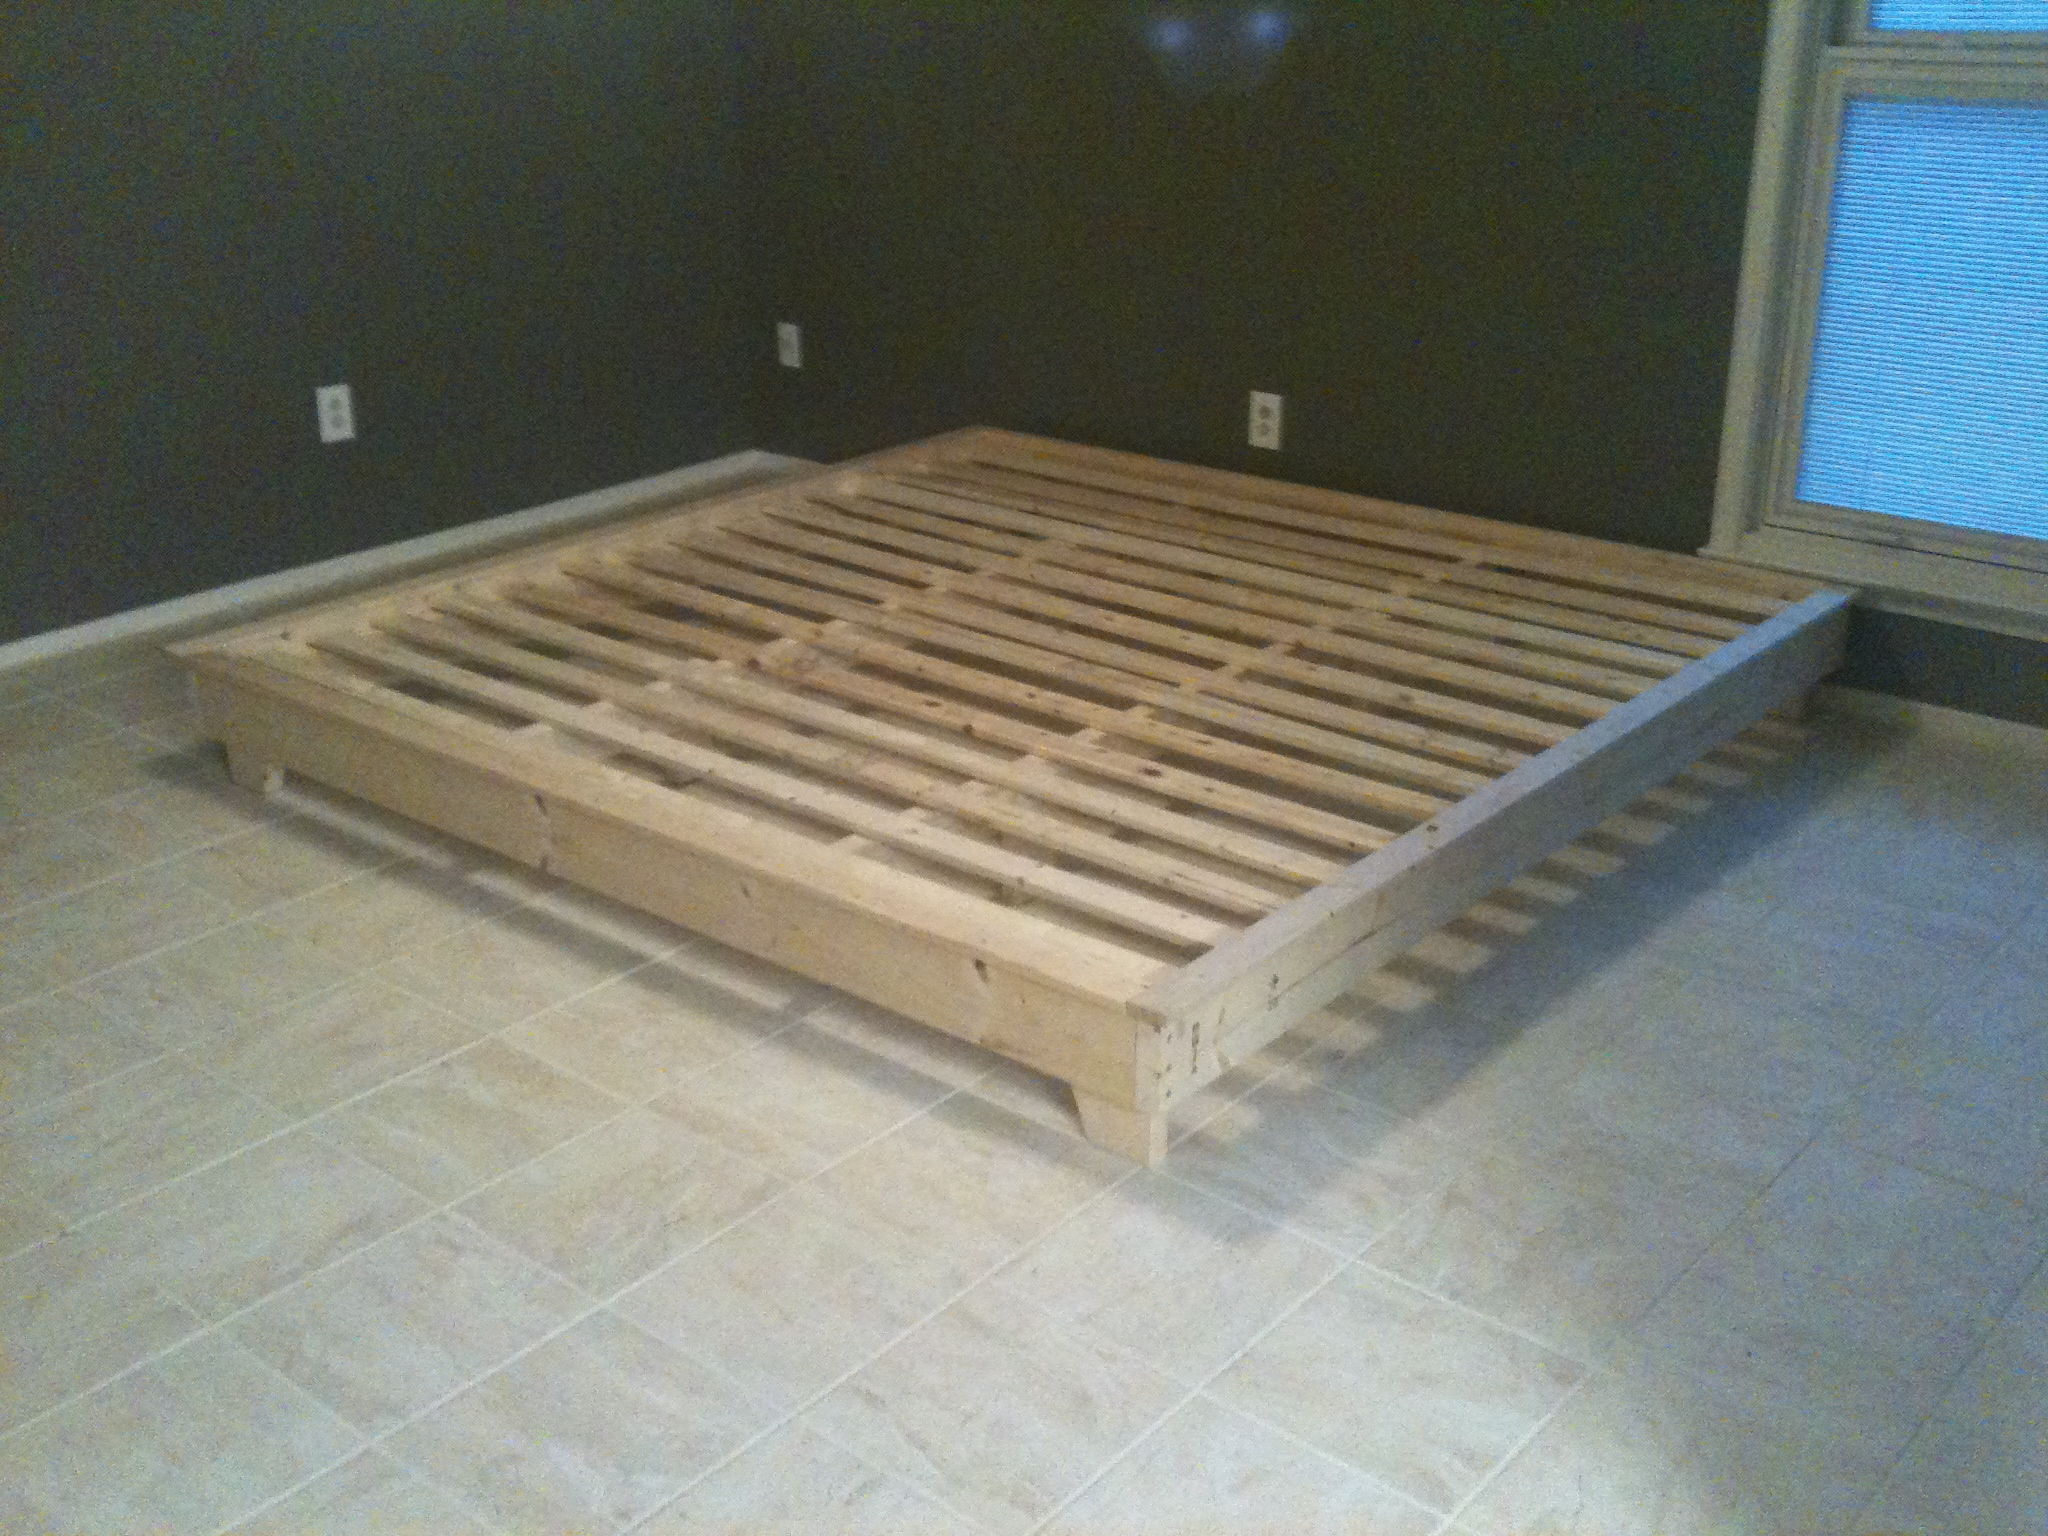 Platform Bed Plans : Wooden Bunk Bed For Your Kids Room | BED PLANS ...